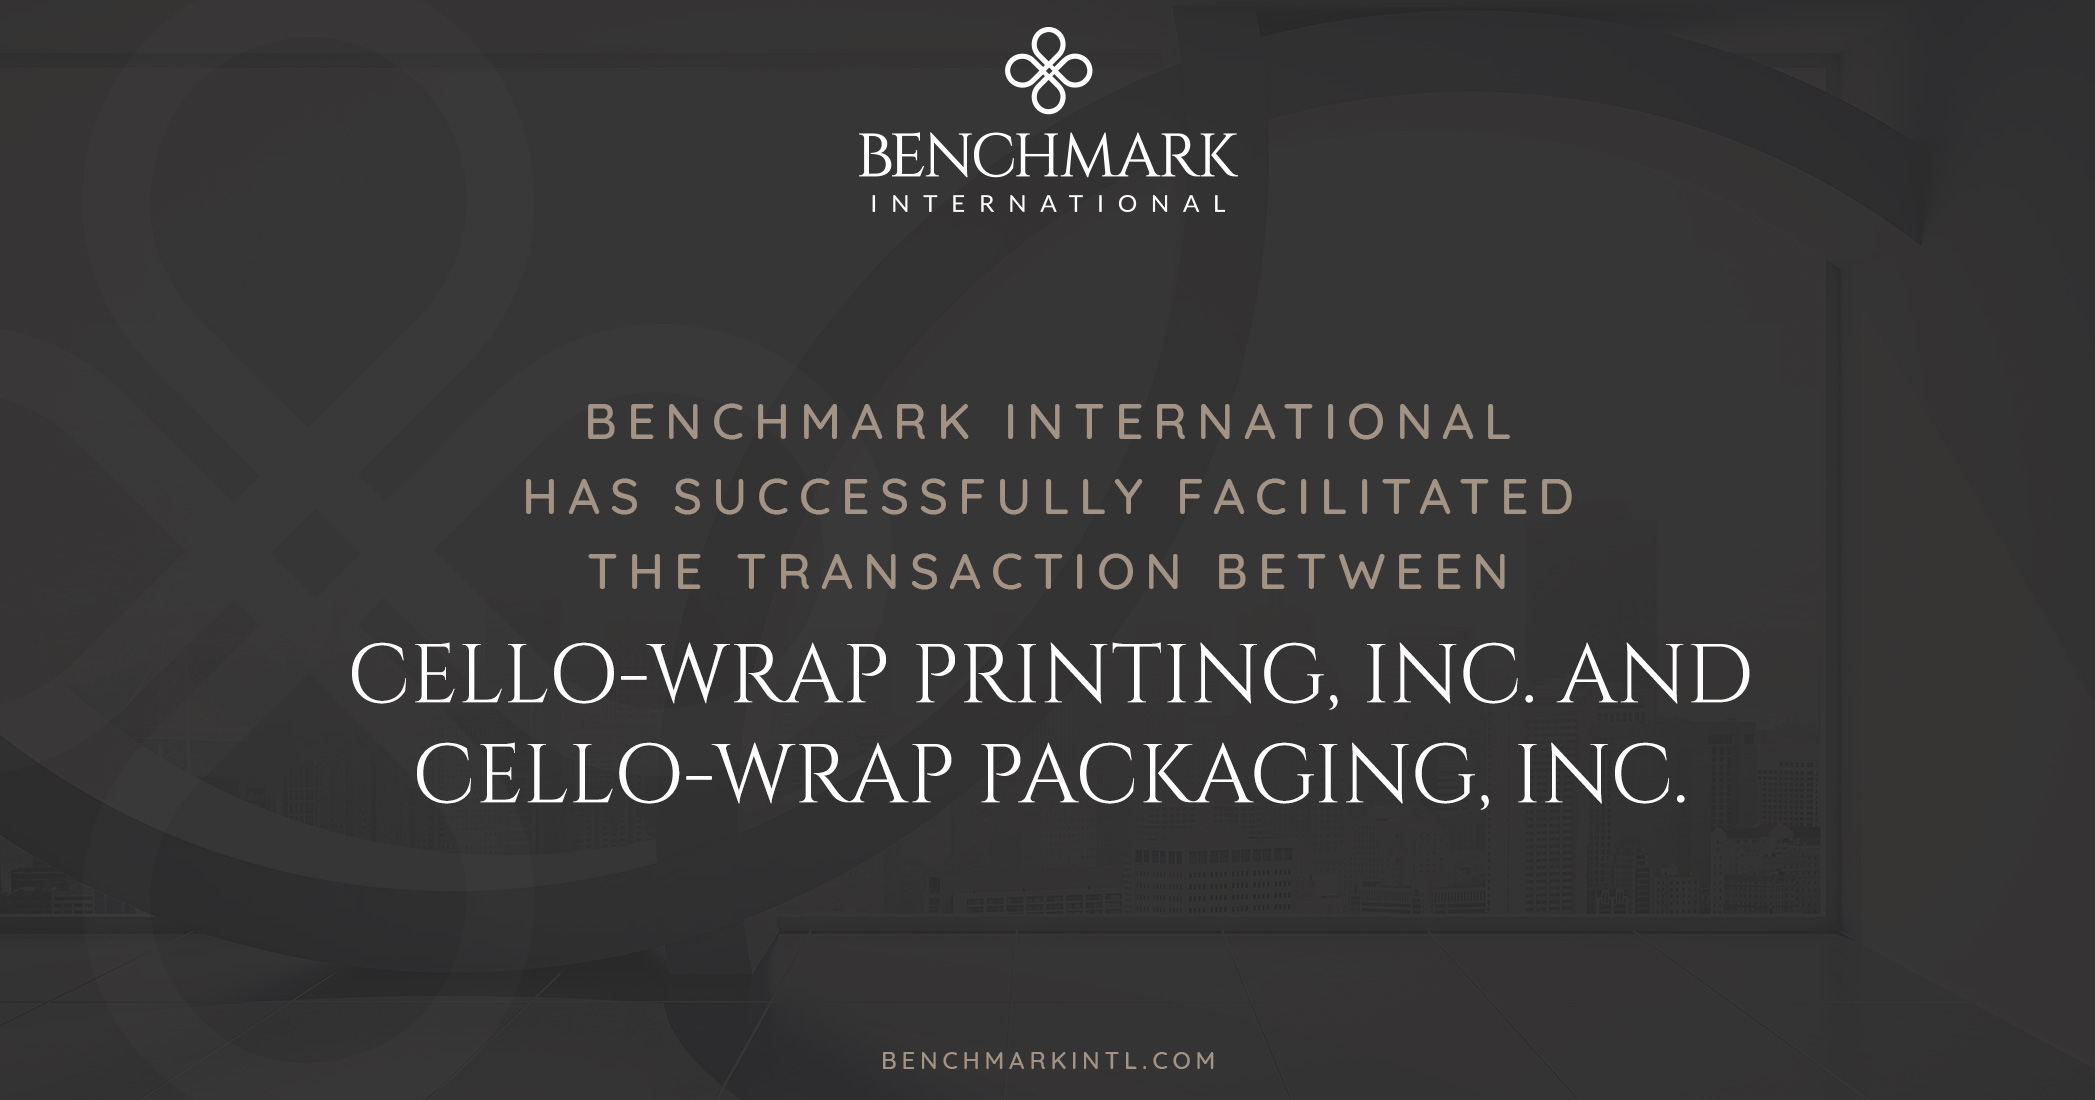 Benchmark International Successfully Facilitated the Transaction Between Cello-Wrap Printing, Inc. and Cello-Wrap Packaging, Inc.